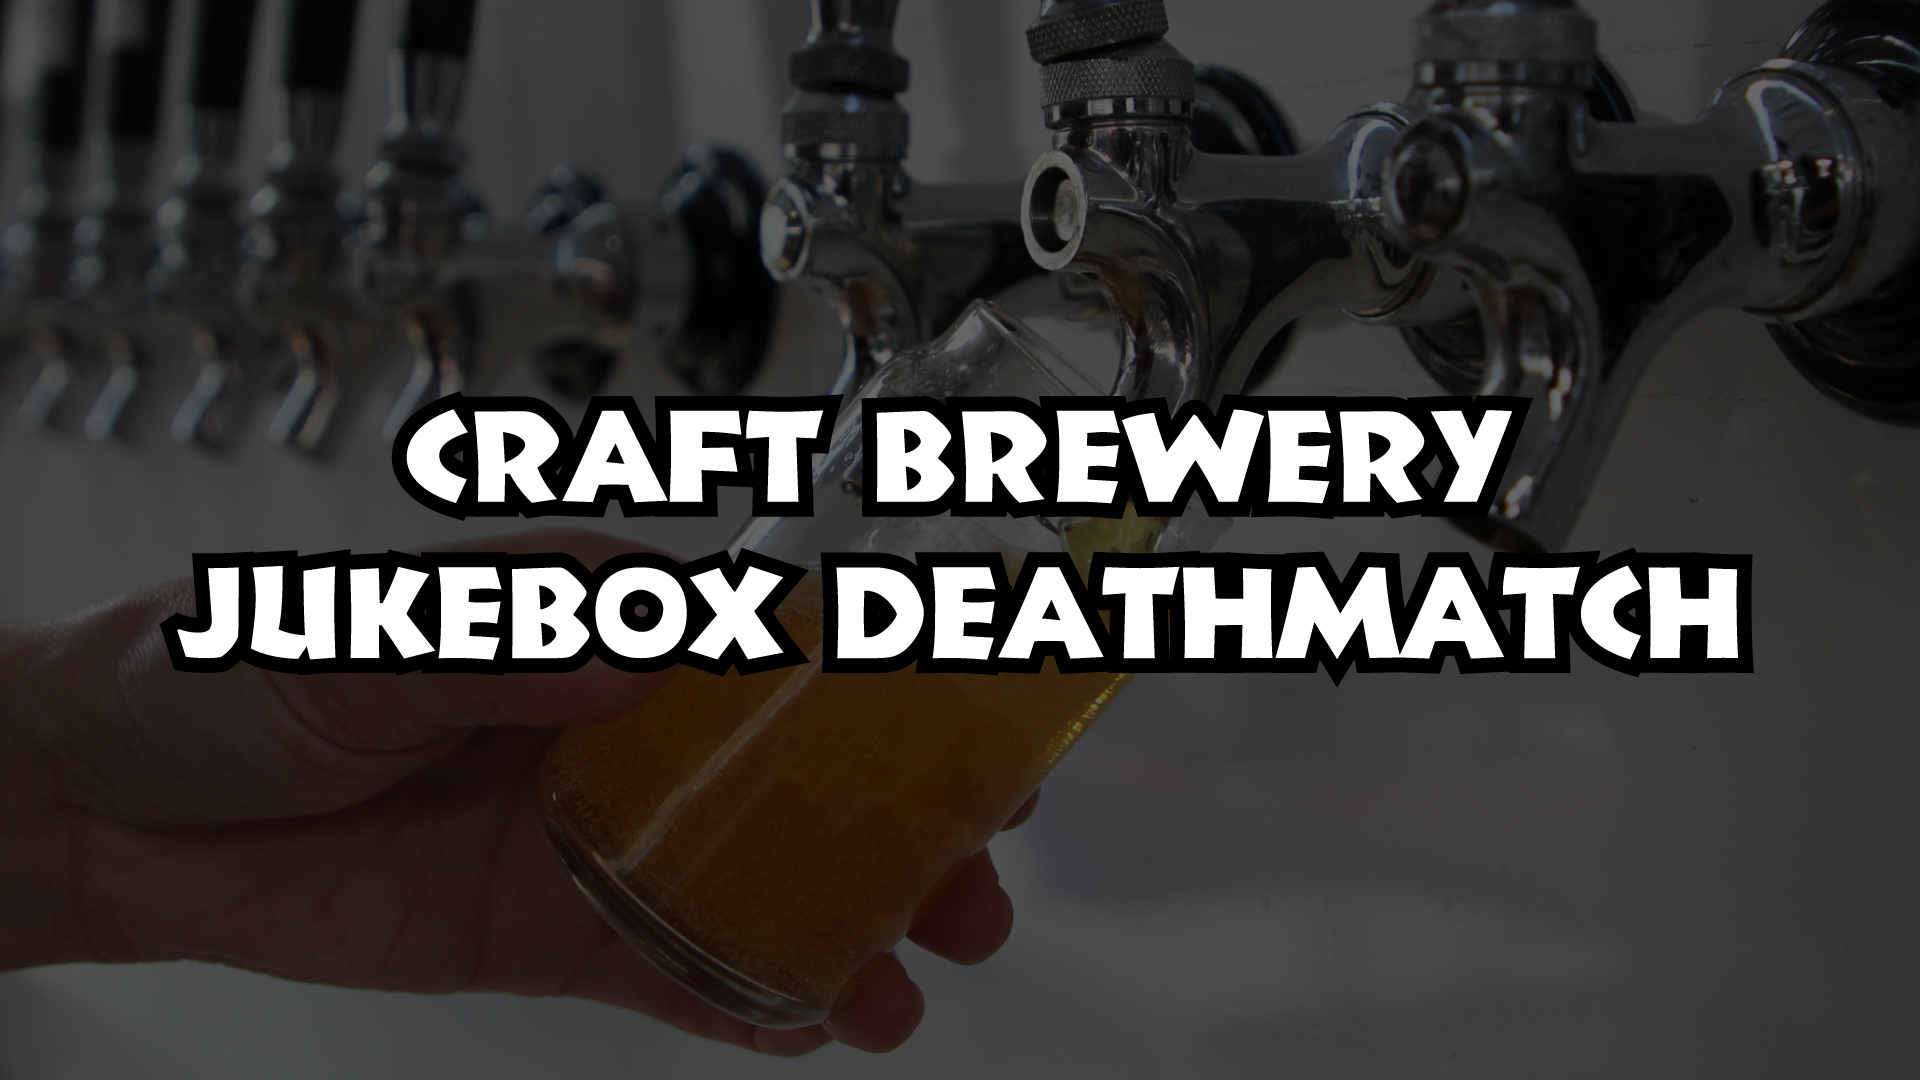 Craft Brewery Jukebox Death Match